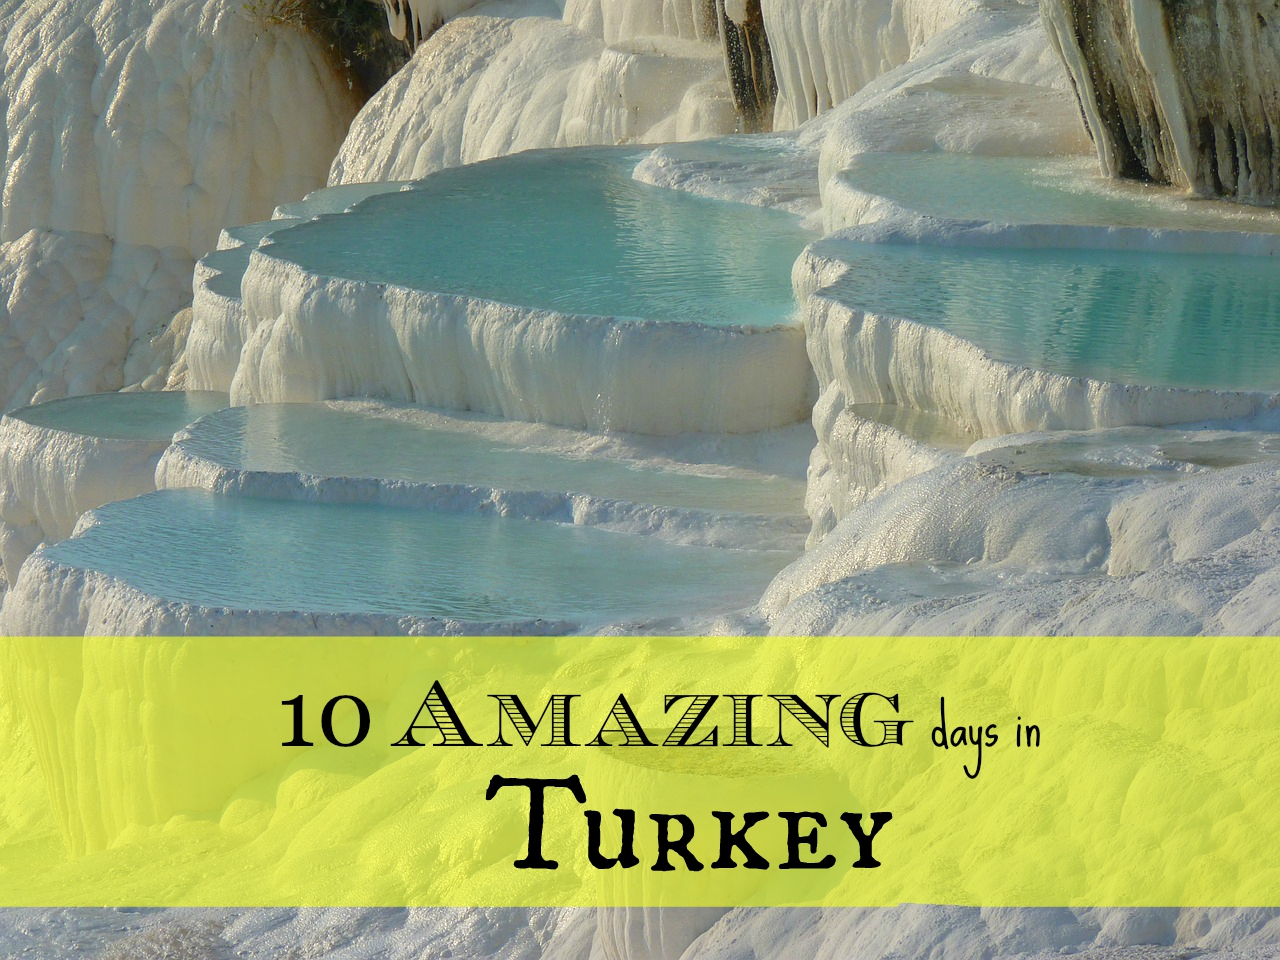 10 amazing days in turkey - wanderalot